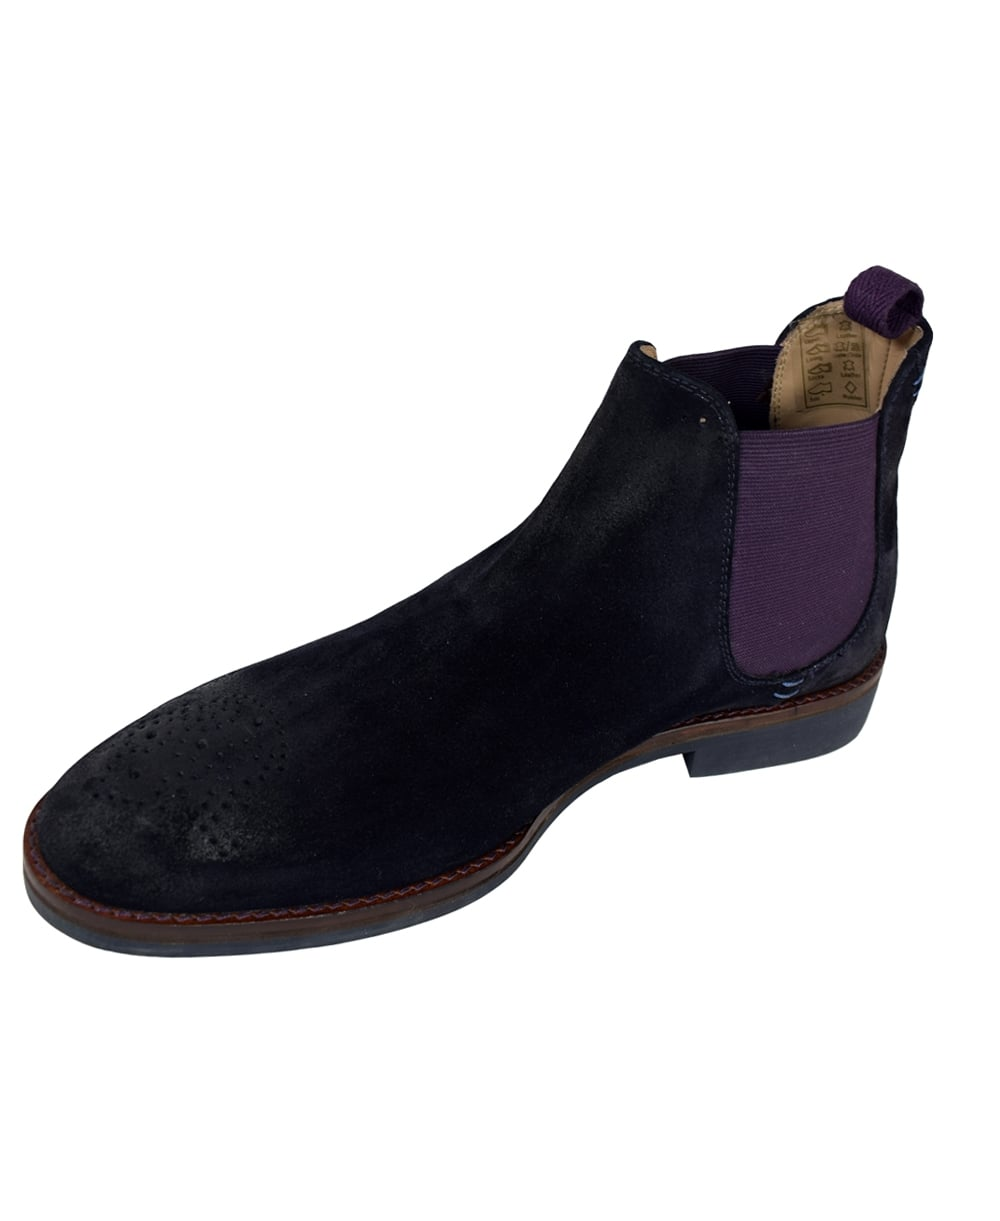 oliver sweeney suede 39 burrows 39 chelsea boots in navy oliver sweeney. Black Bedroom Furniture Sets. Home Design Ideas